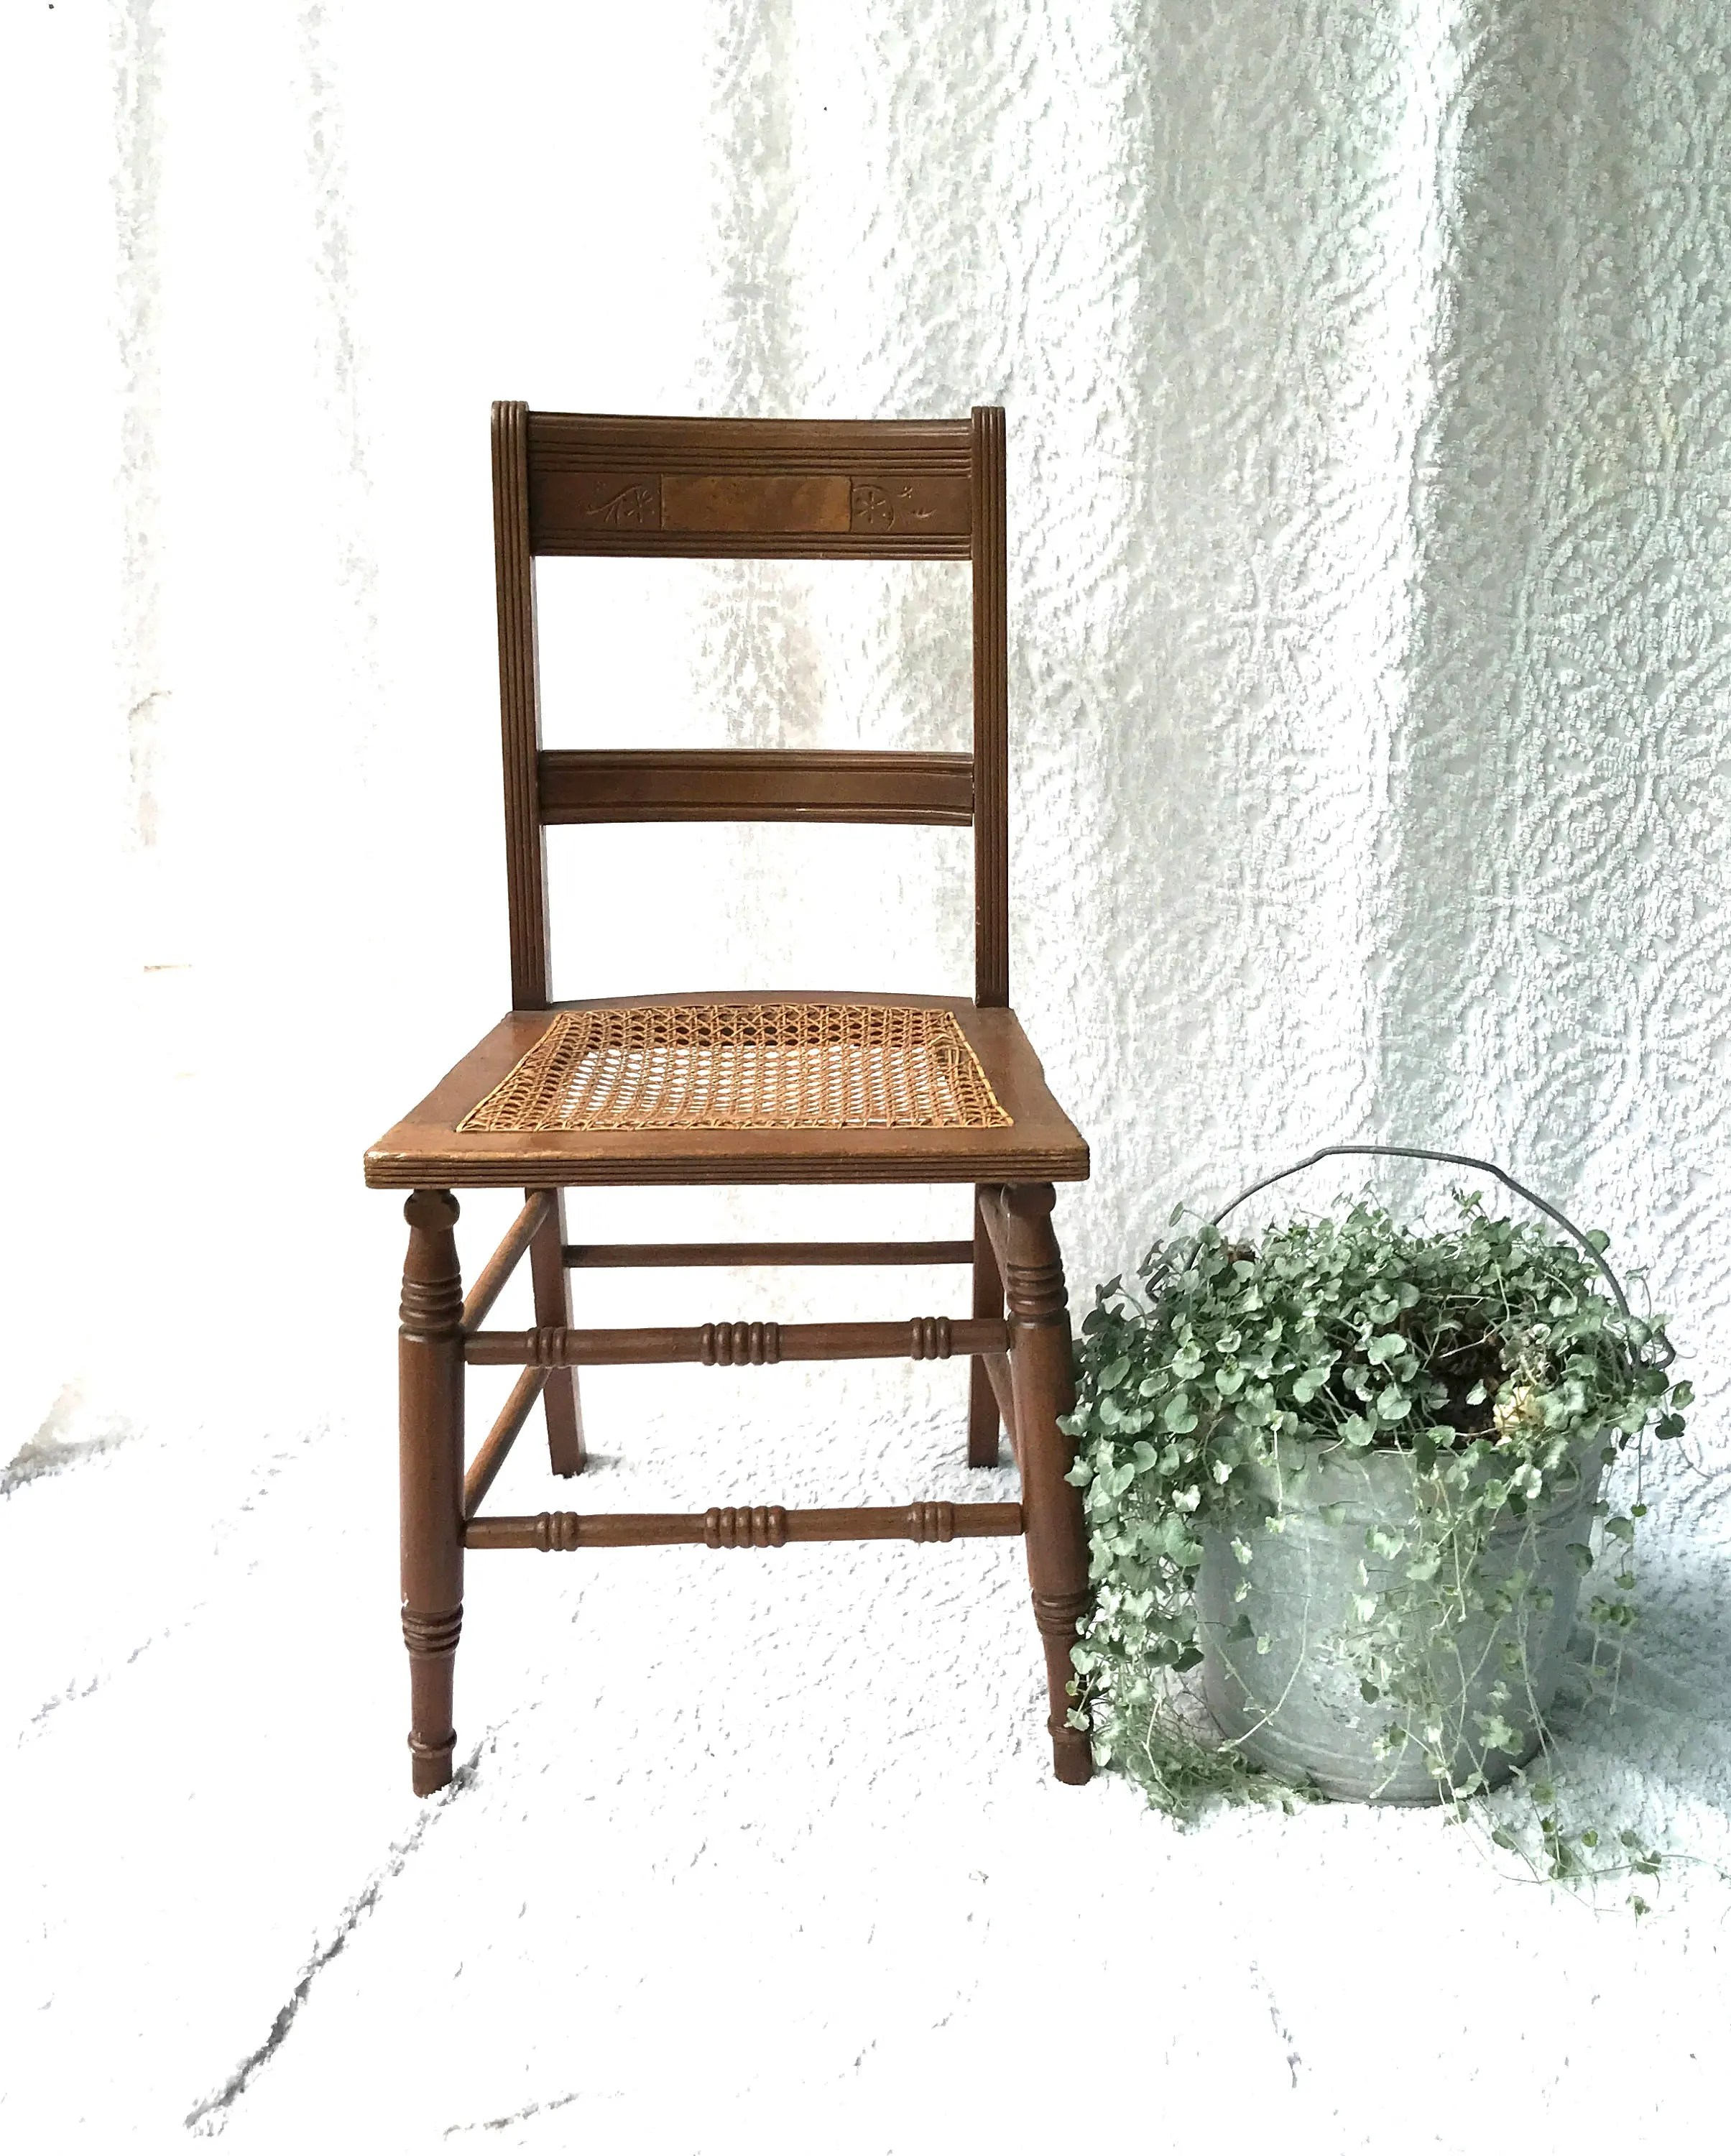 cane bottom chairs lawn academy vintage wooden chair caned wood kitchen